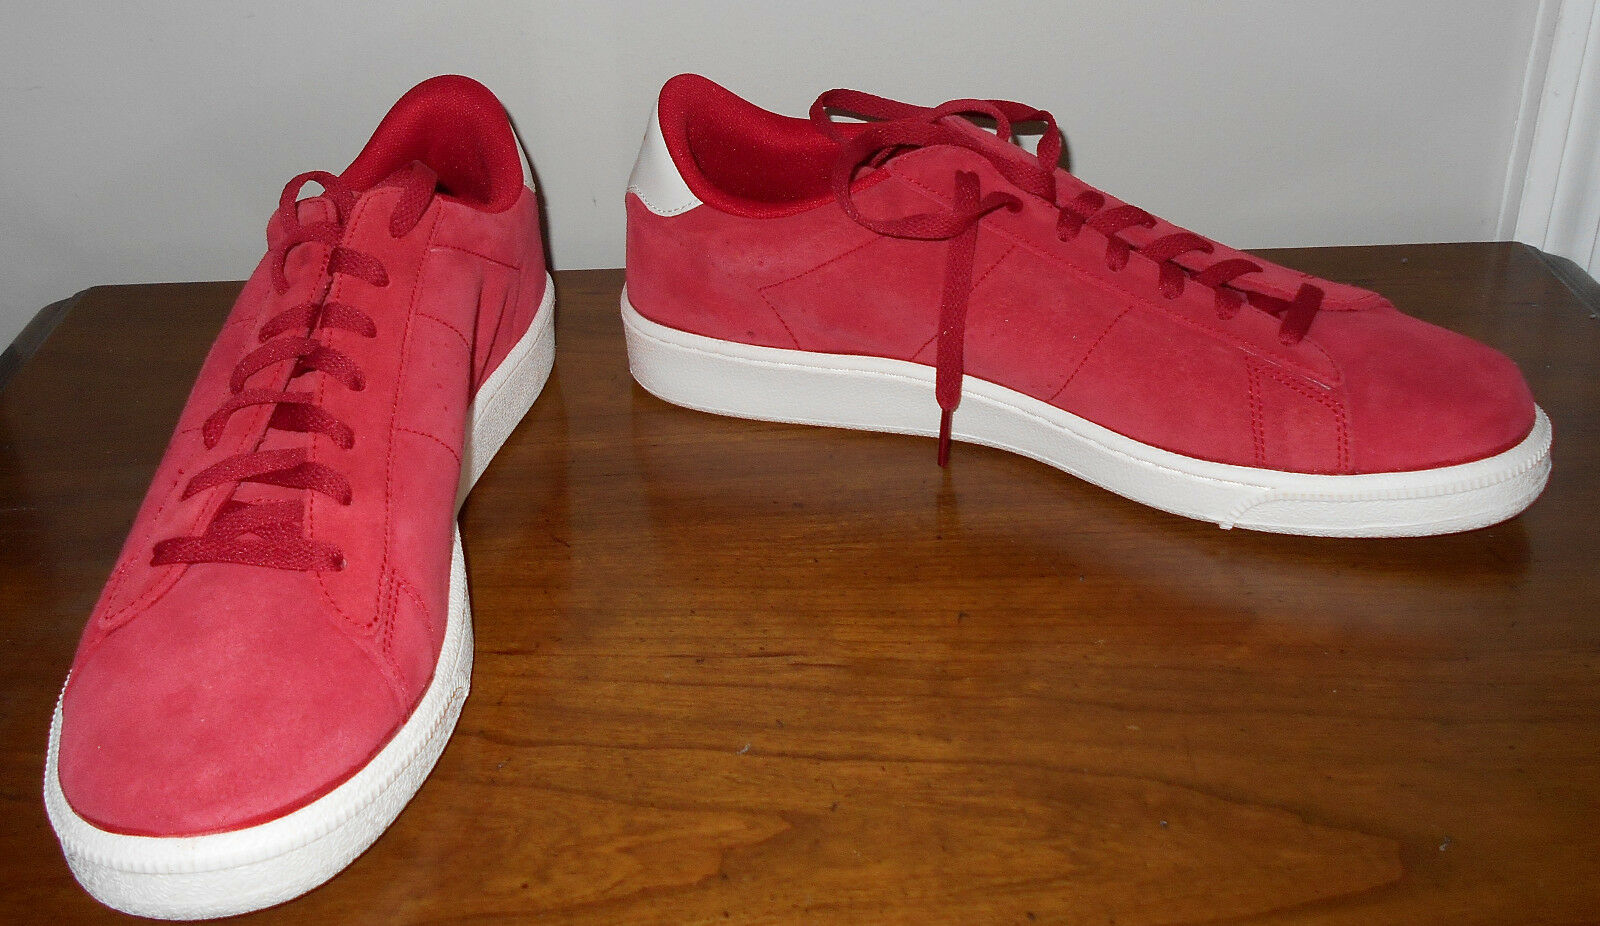 Nike Classic CS Suede Varsity Red Ivory Casual shoes Size 11.5 NWOB 829351 600